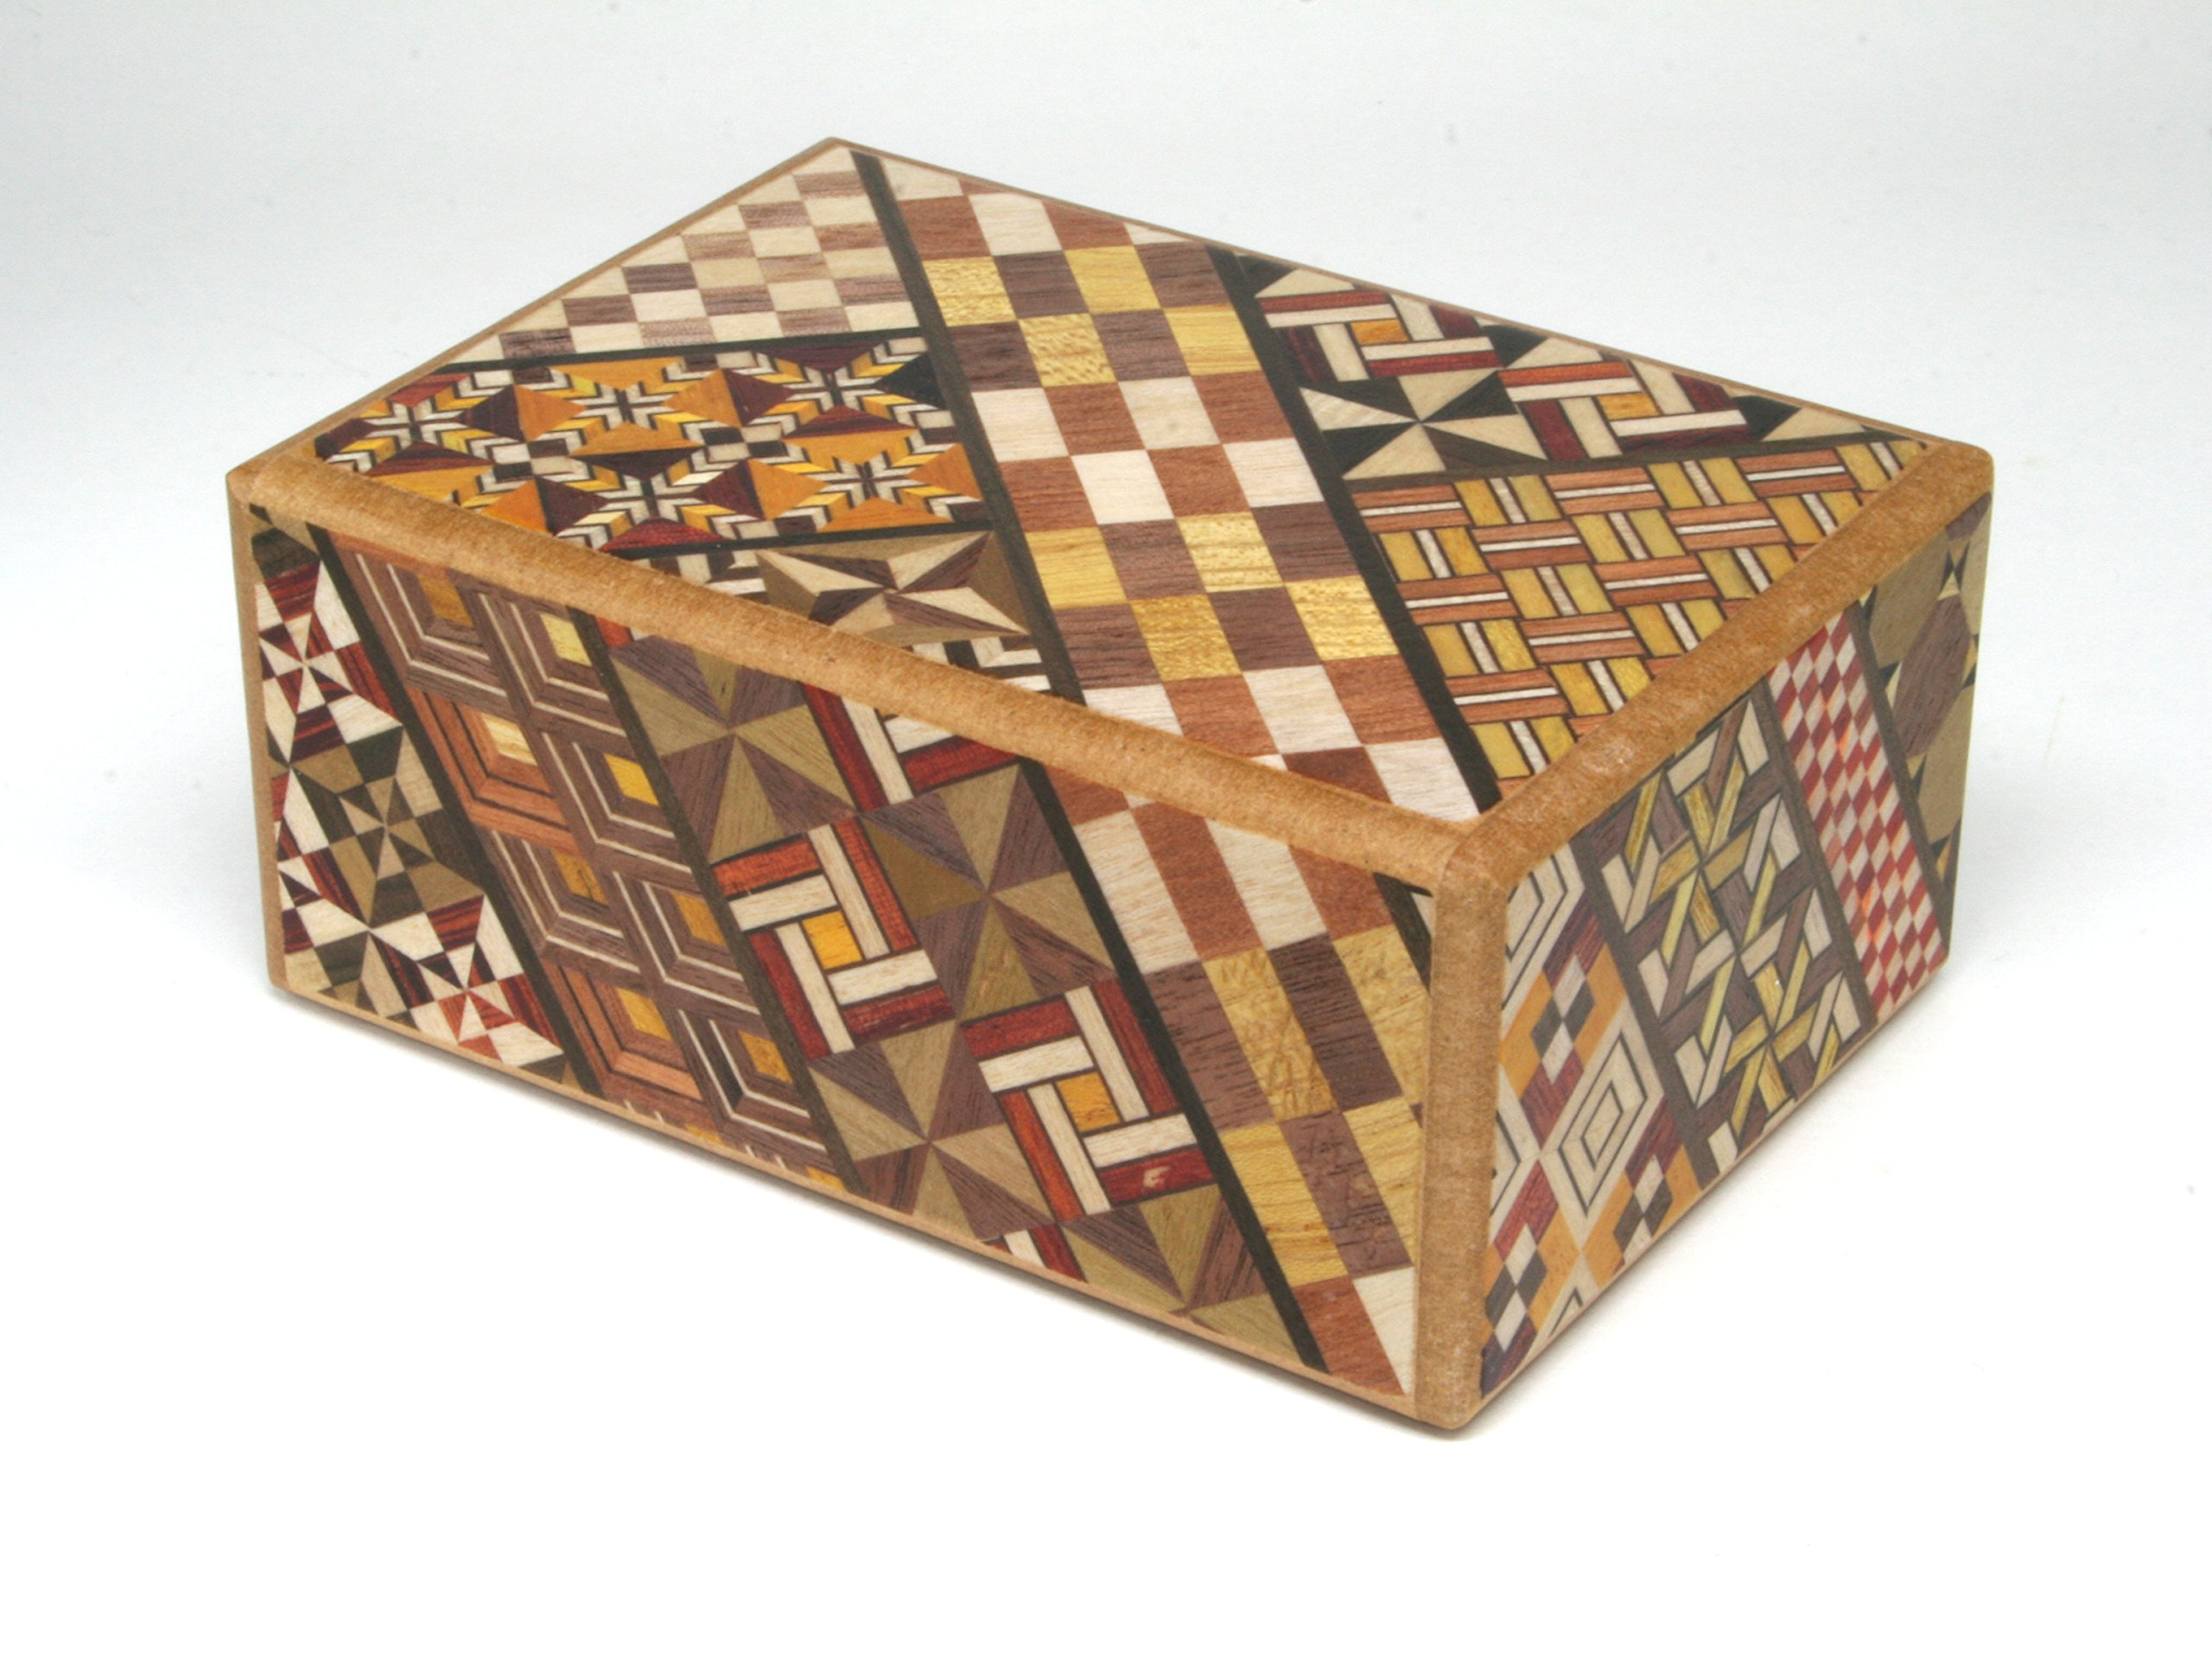 Japanese Puzzle box 4sun 4steps